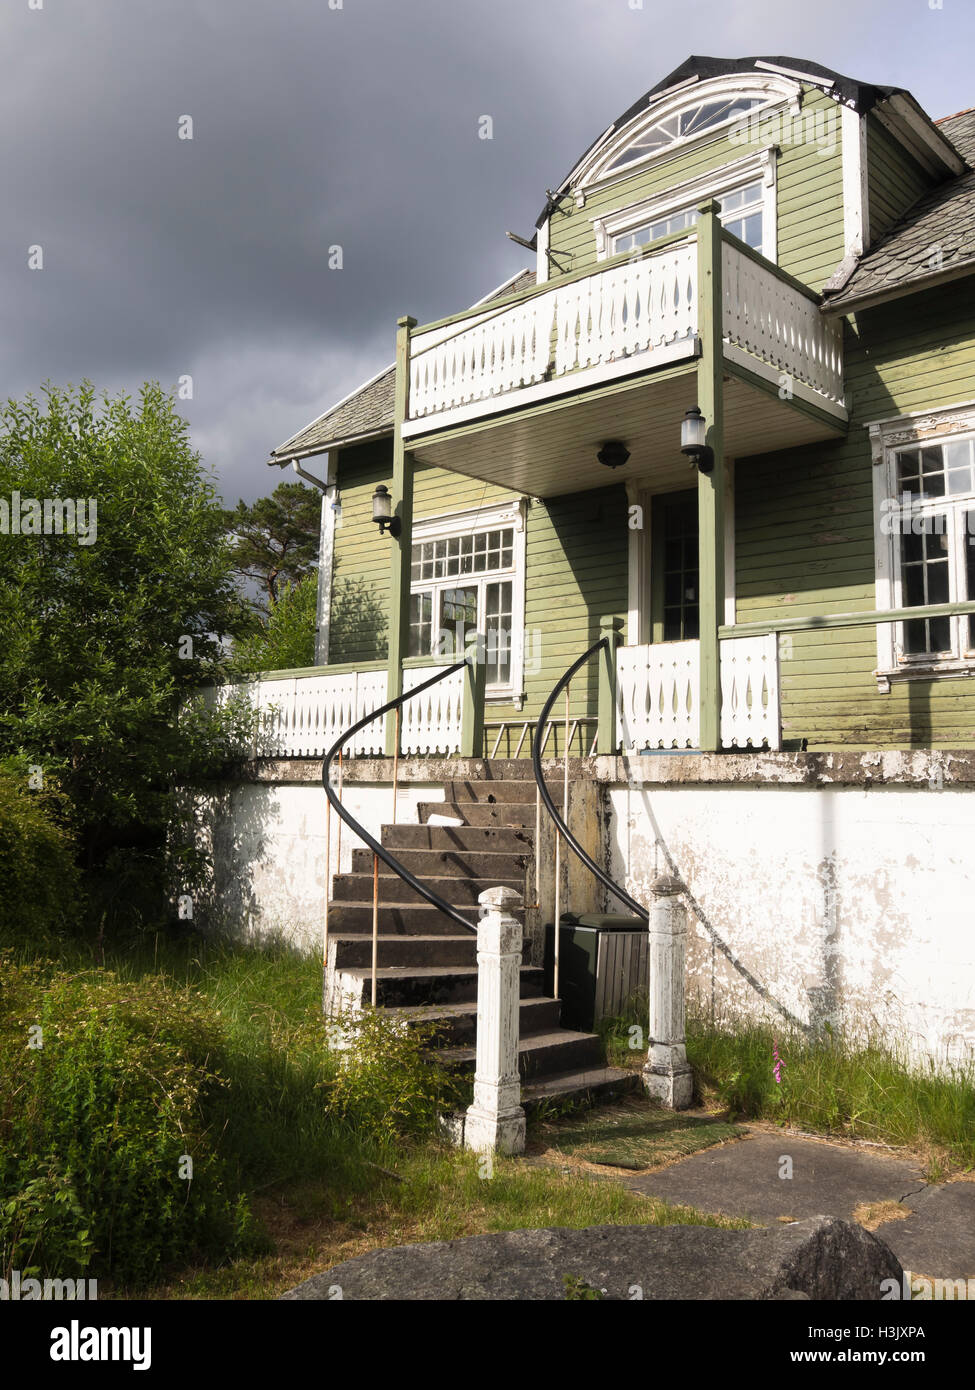 Stately old green and white clapboard villa in a state of disrepair, Utsikten, Vest-Agder Norway - Stock Image